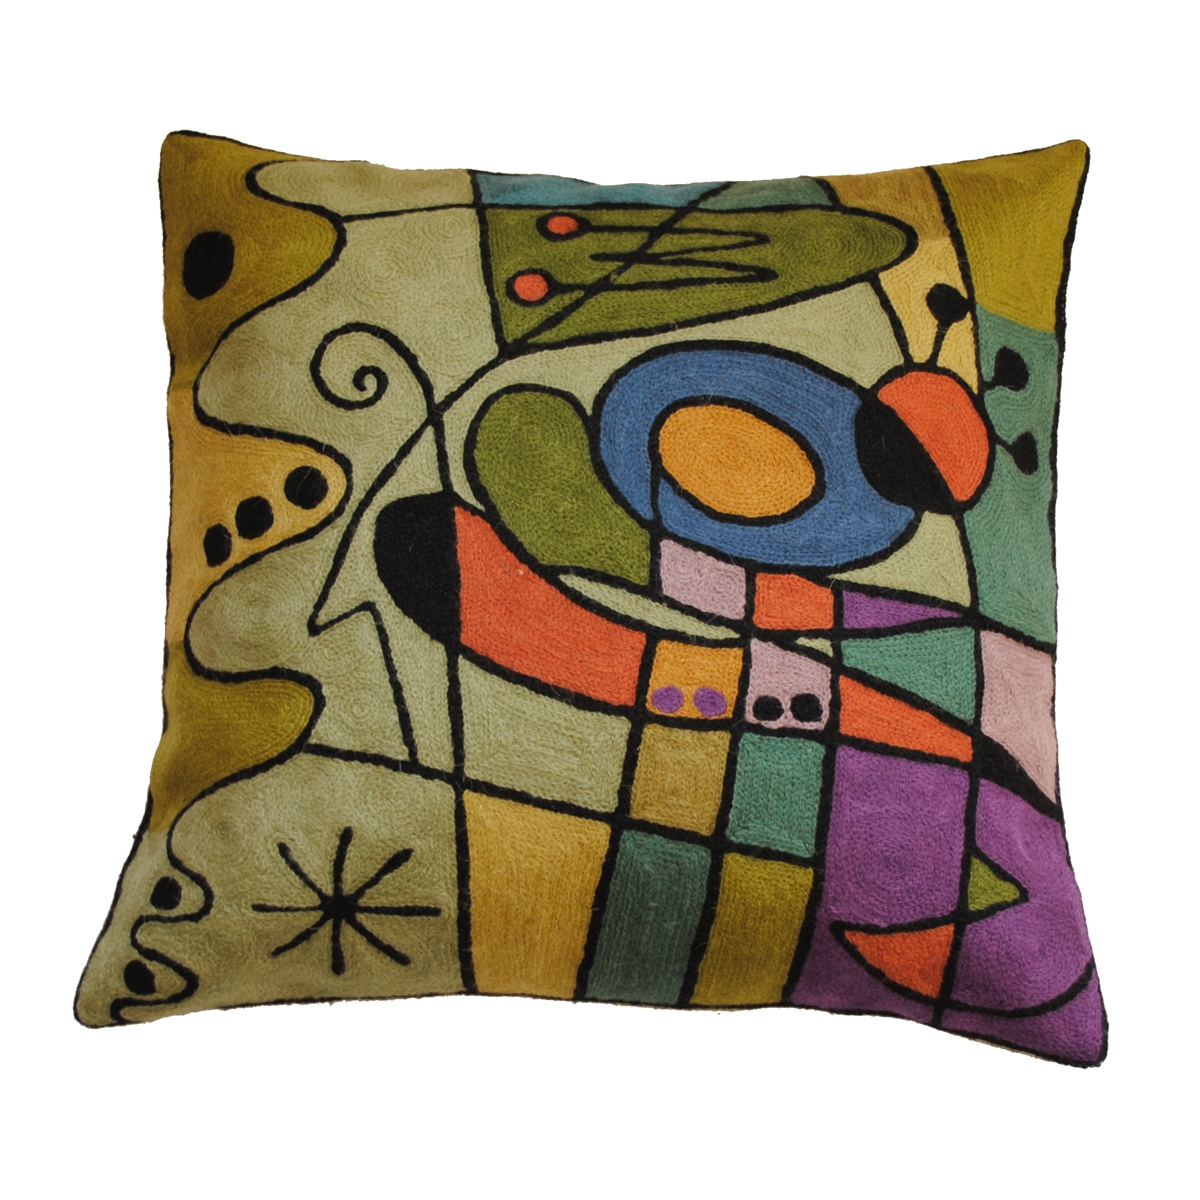 "Zaida Kandinsky Purple Carnival Cushion 18""  45cm x 45cm (18 x 18 inches)"